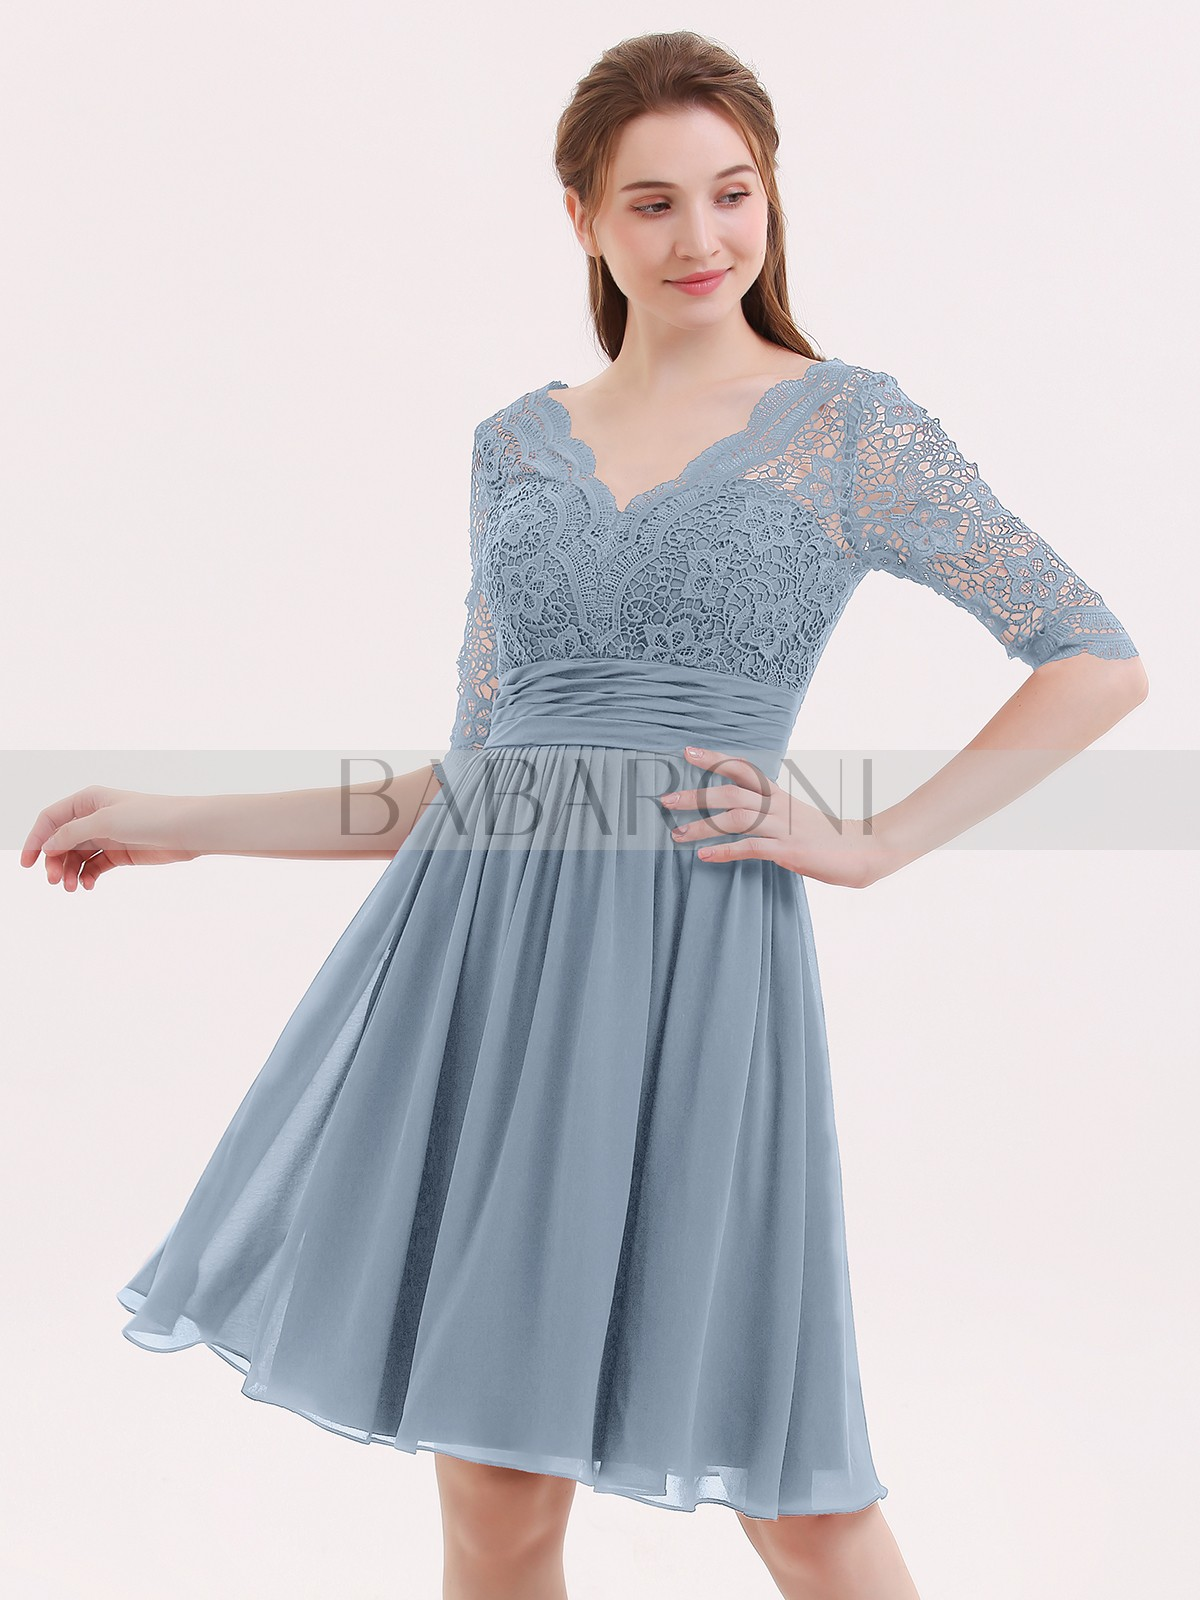 4d7b2aec357 Dusty Blue Alexia Lace And Chiffon Short Dress With Half Sleeves